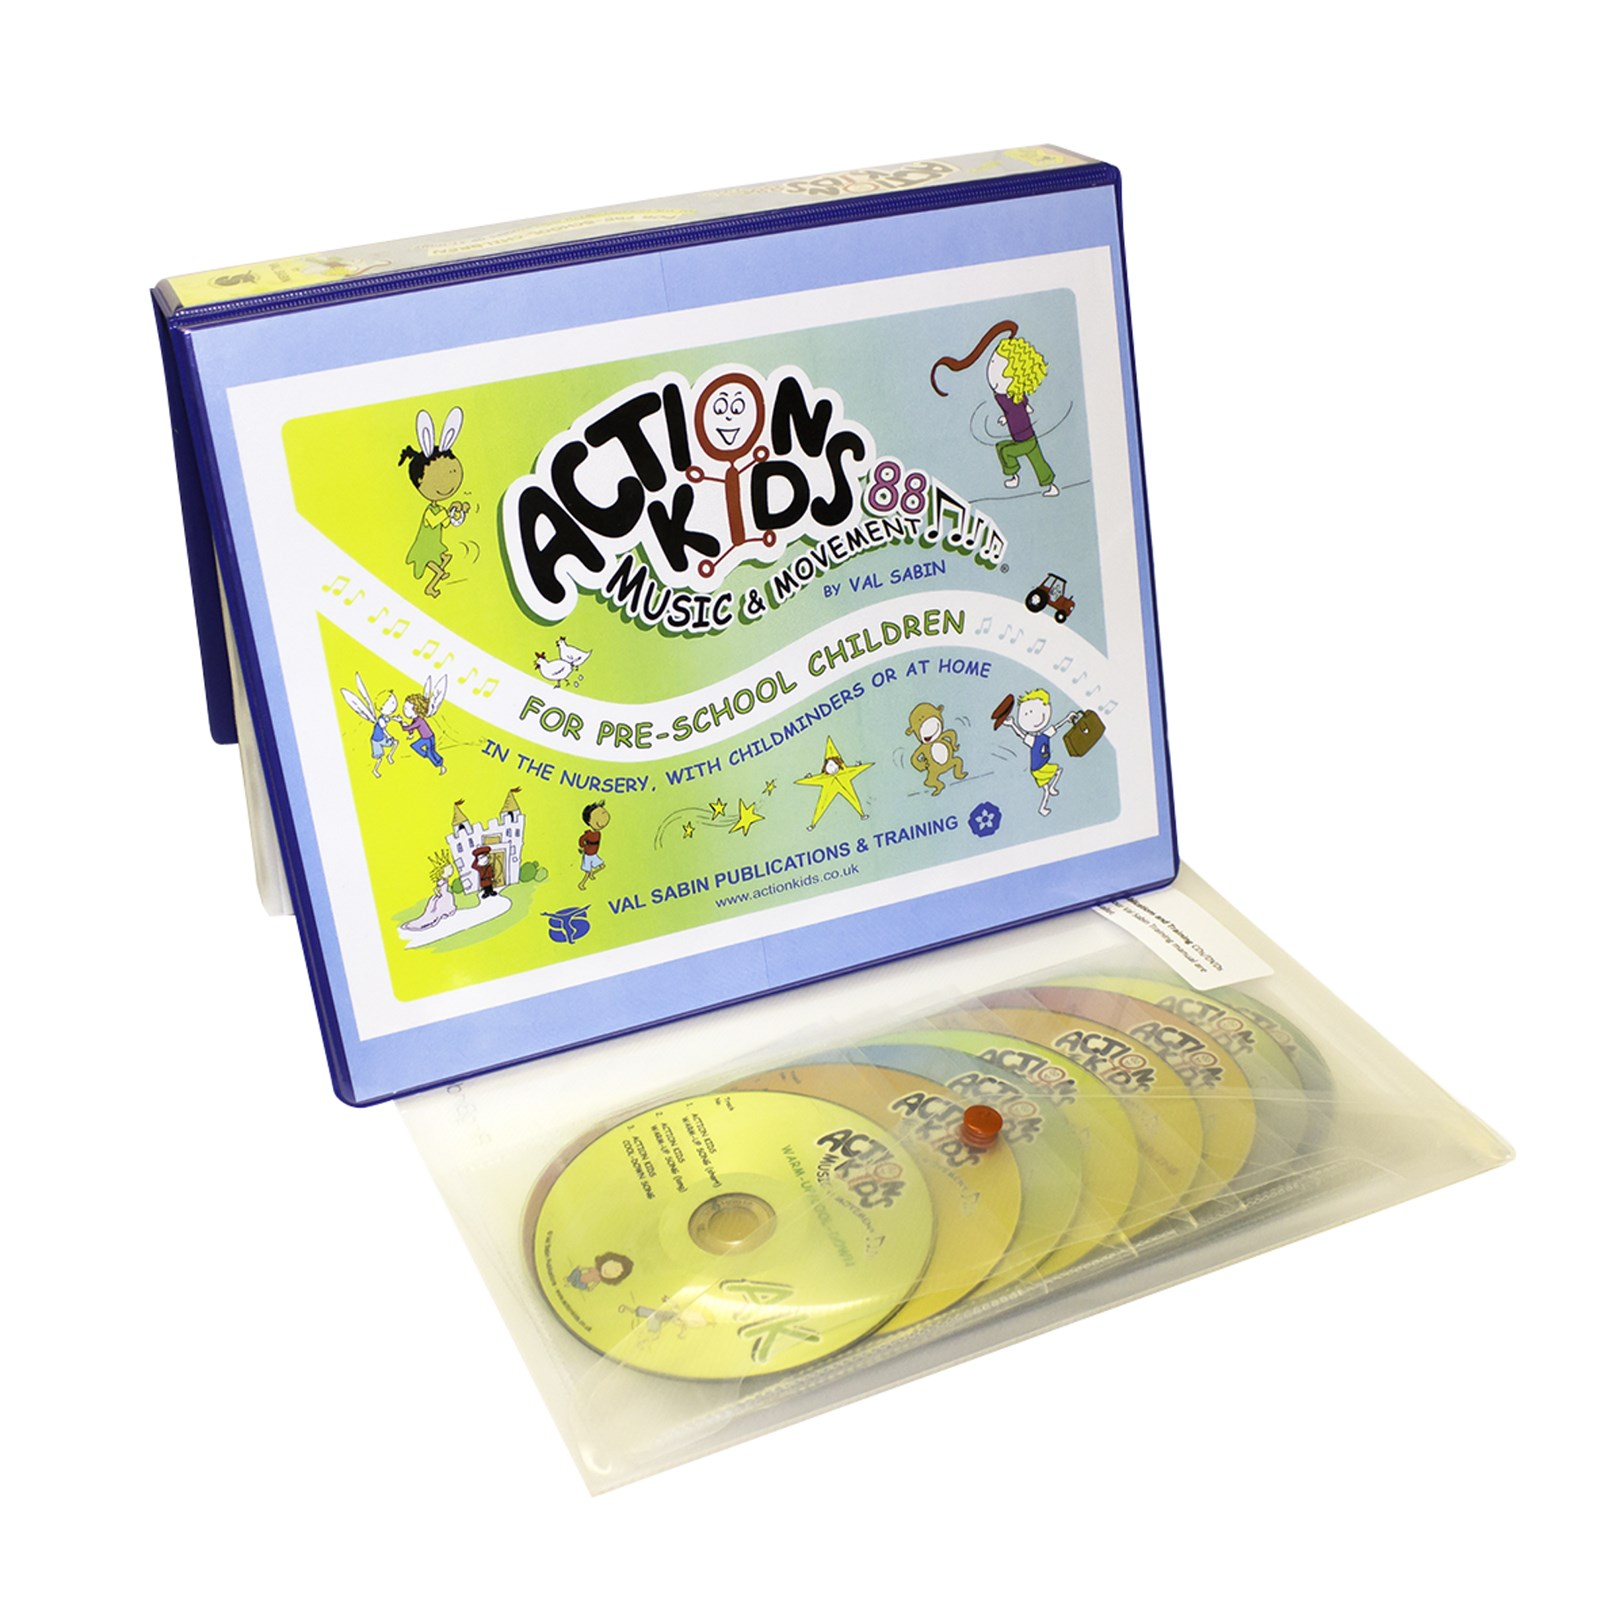 Action Kids 88 Music and Movement Teaching Manual